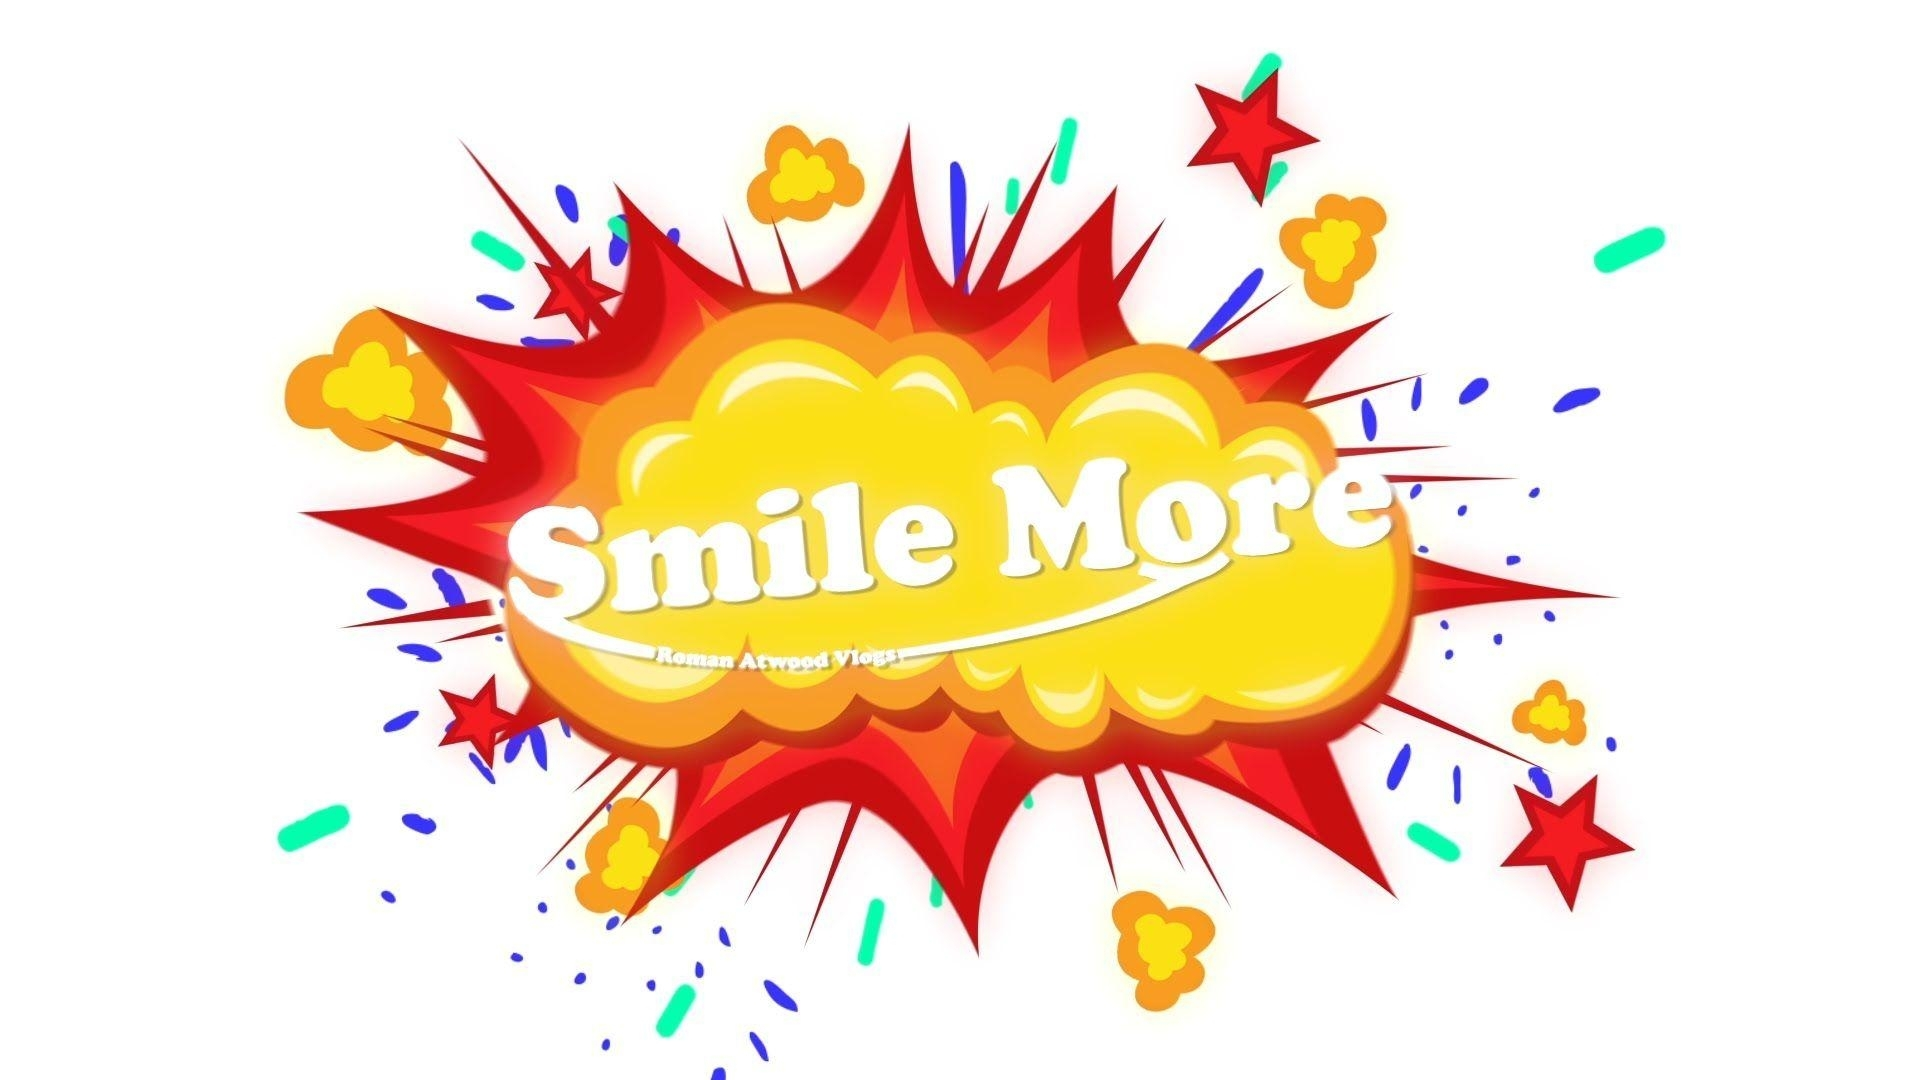 Title Smile More Wallpapers Wallpaper Cave Dimension 1920 X 1080 File Type JPG JPEG